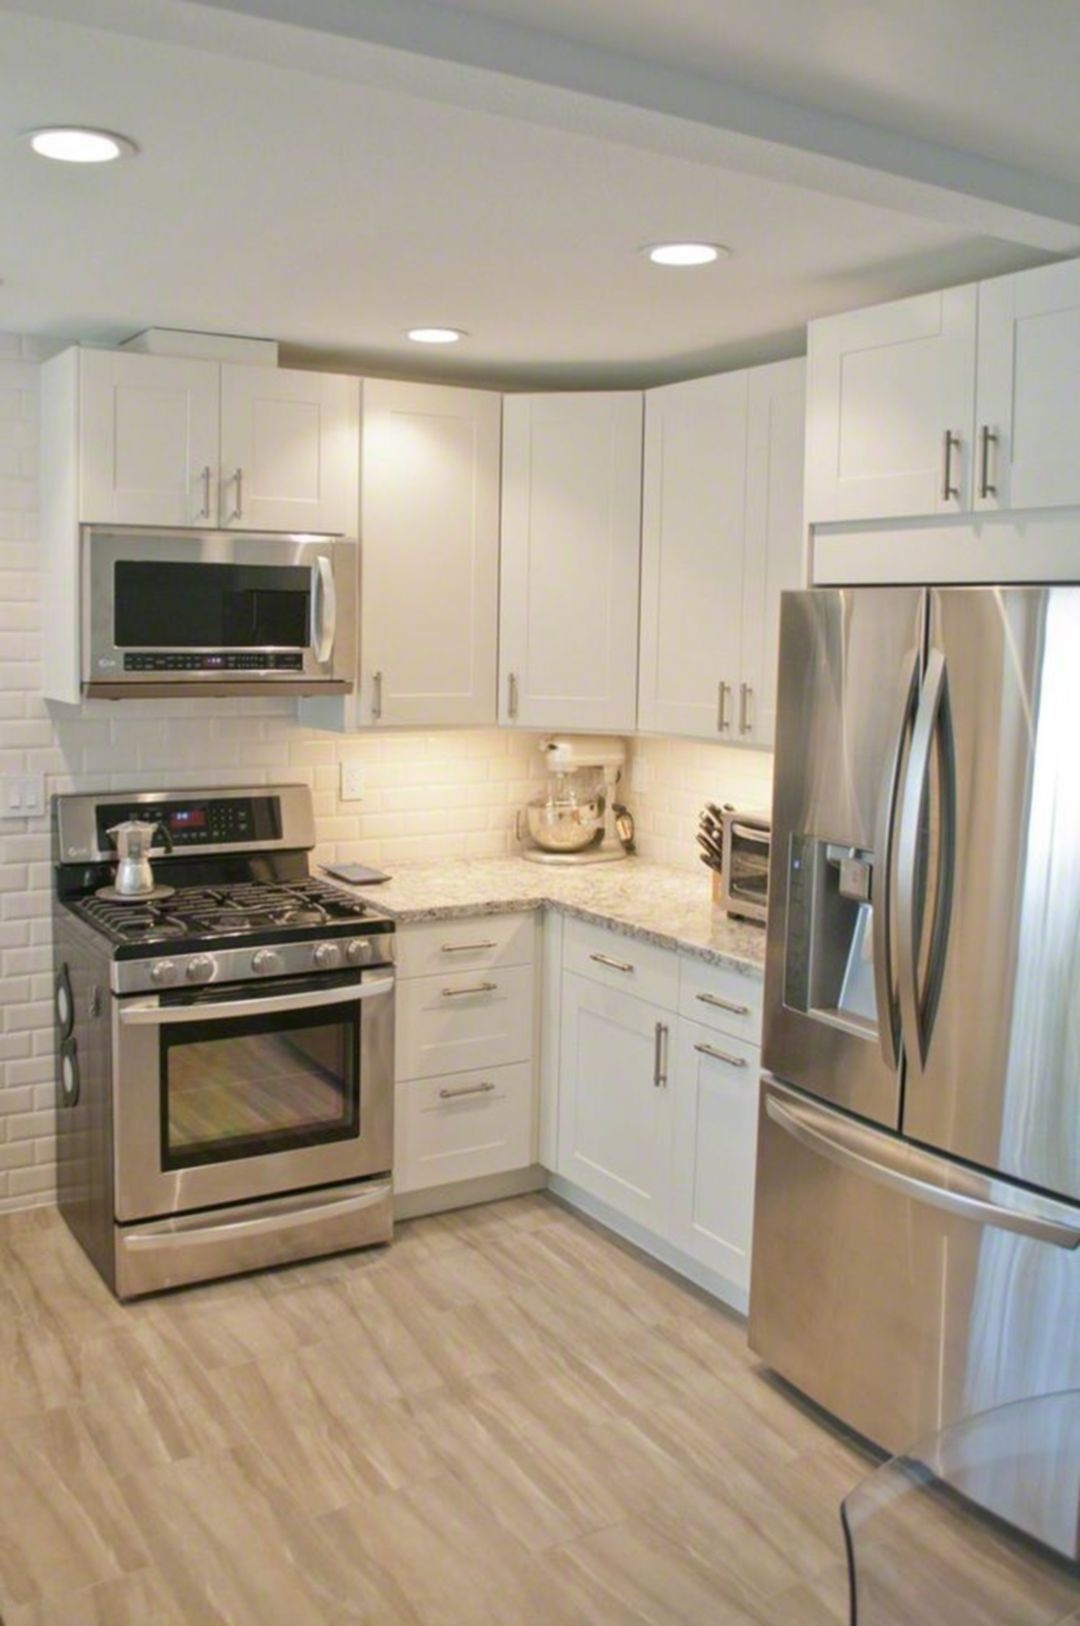 Gorgeous 25 Small Kitchens With White Cabinets Ideas Small White Kitchens Kitchen Remodel Small White Ikea Kitchen